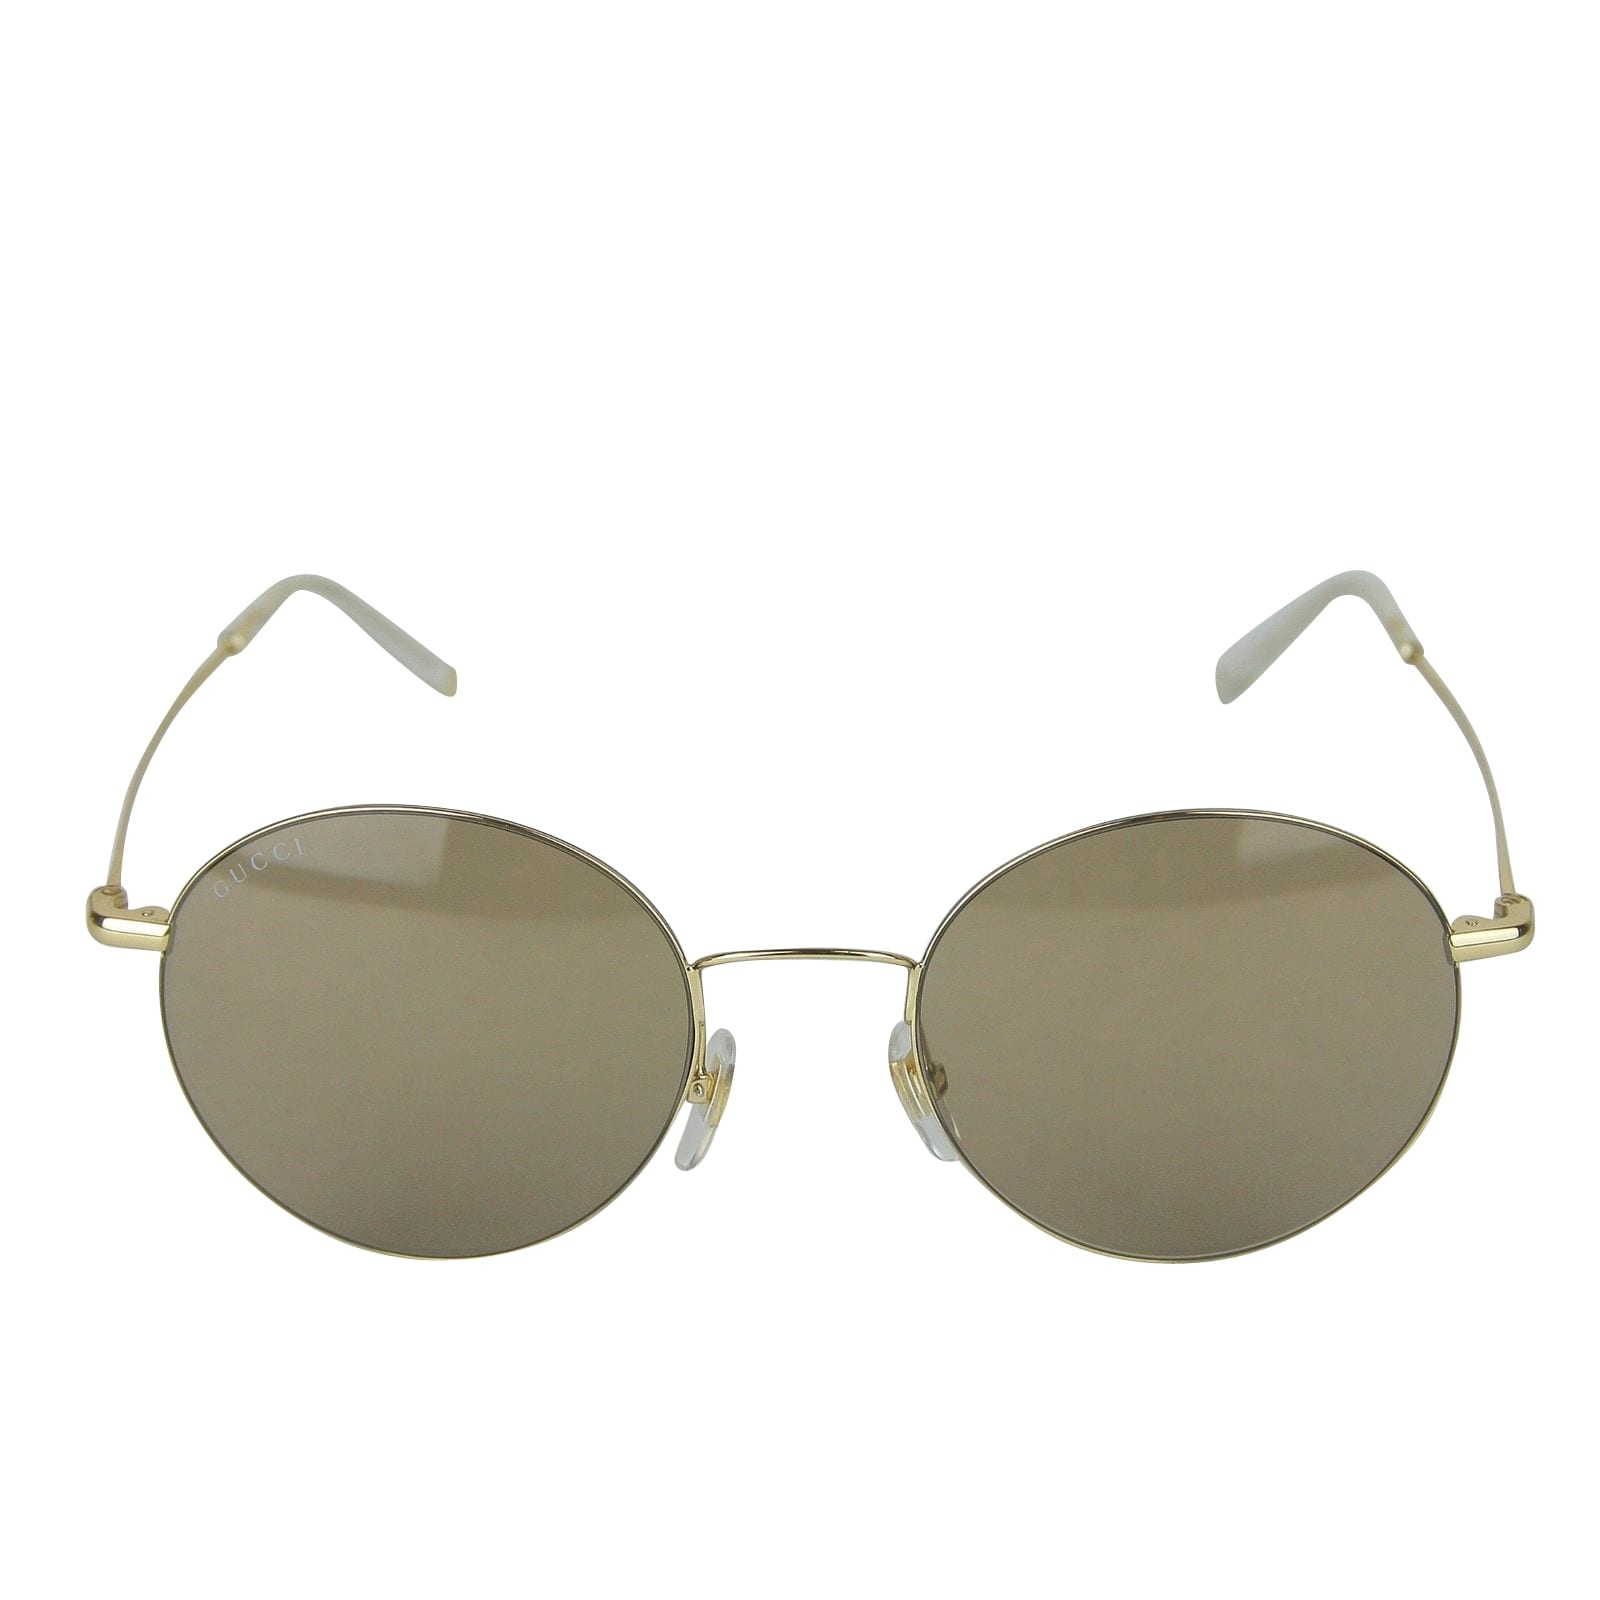 ef79218e4fb Shop Gucci Unisex Round Gold Metal Sunglasses With Logo GG 4273 S 3YGMI  391327 8903 - One size - Free Shipping Today - Overstock - 28032039